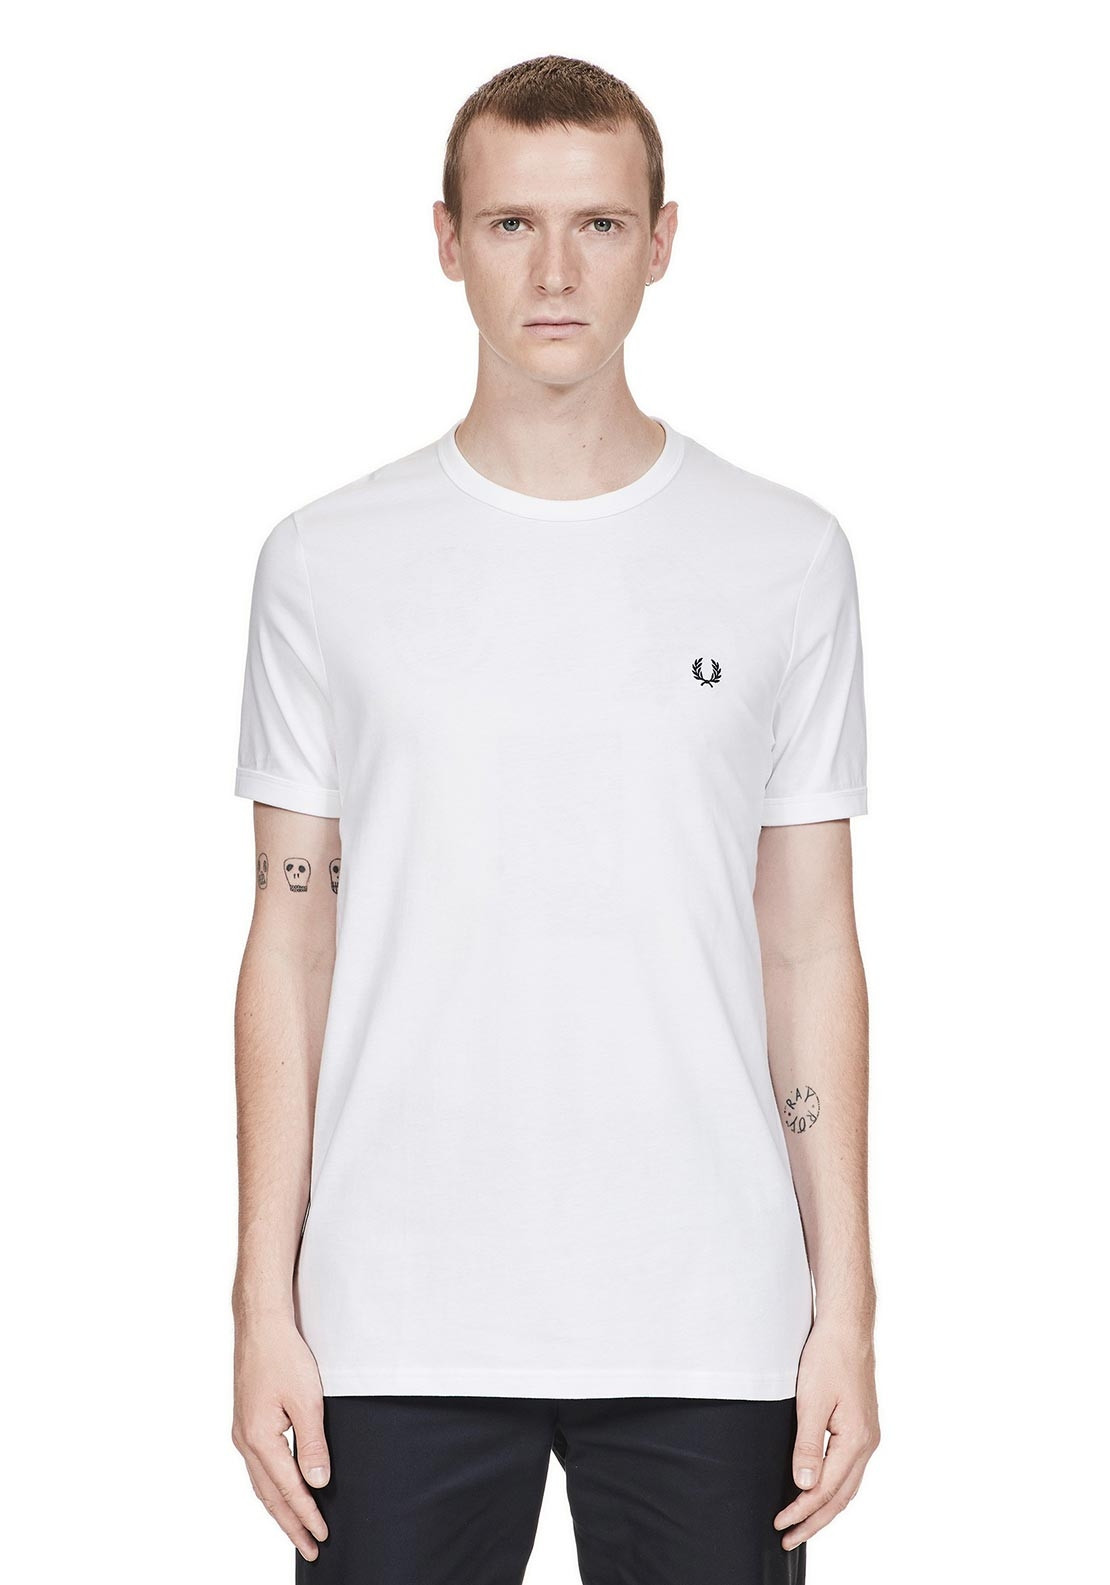 9d8fa97c Fred Perry Ringer T-Shirt, White. Be the first to review this product